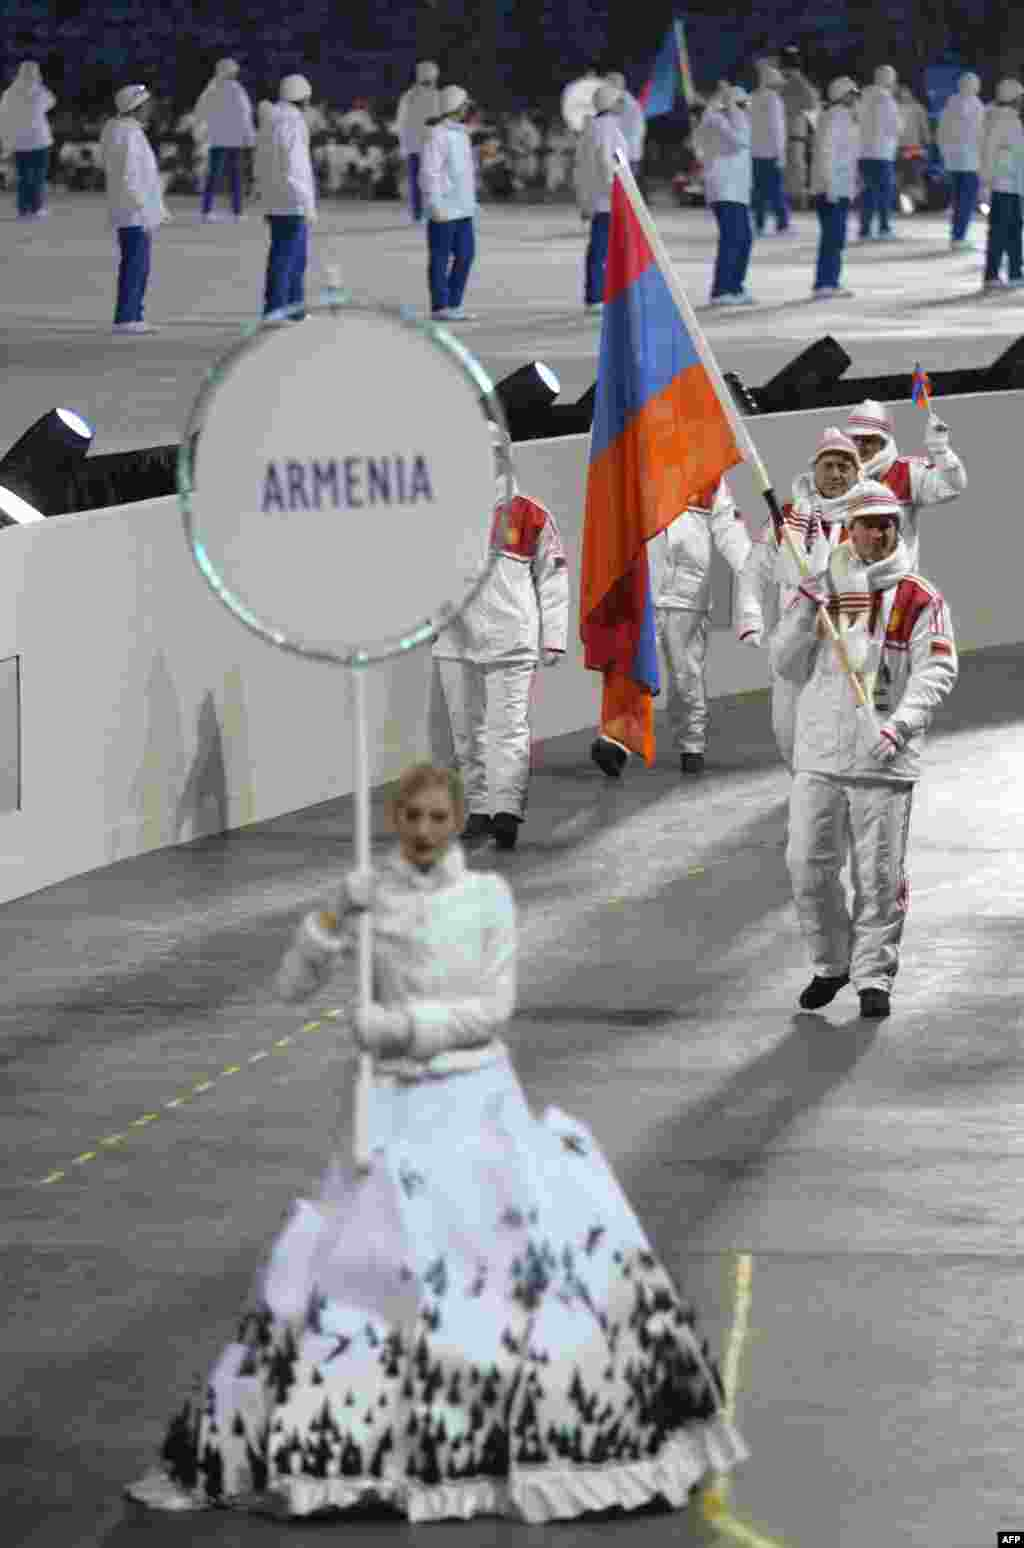 Neighboring Armenia offers cash awards of $30,000 for gold medals, $20,000 for silvers, and $10,000 for bronzes. Neither Azerbaijan nor Armenia medaled at the last Winter Olympics.